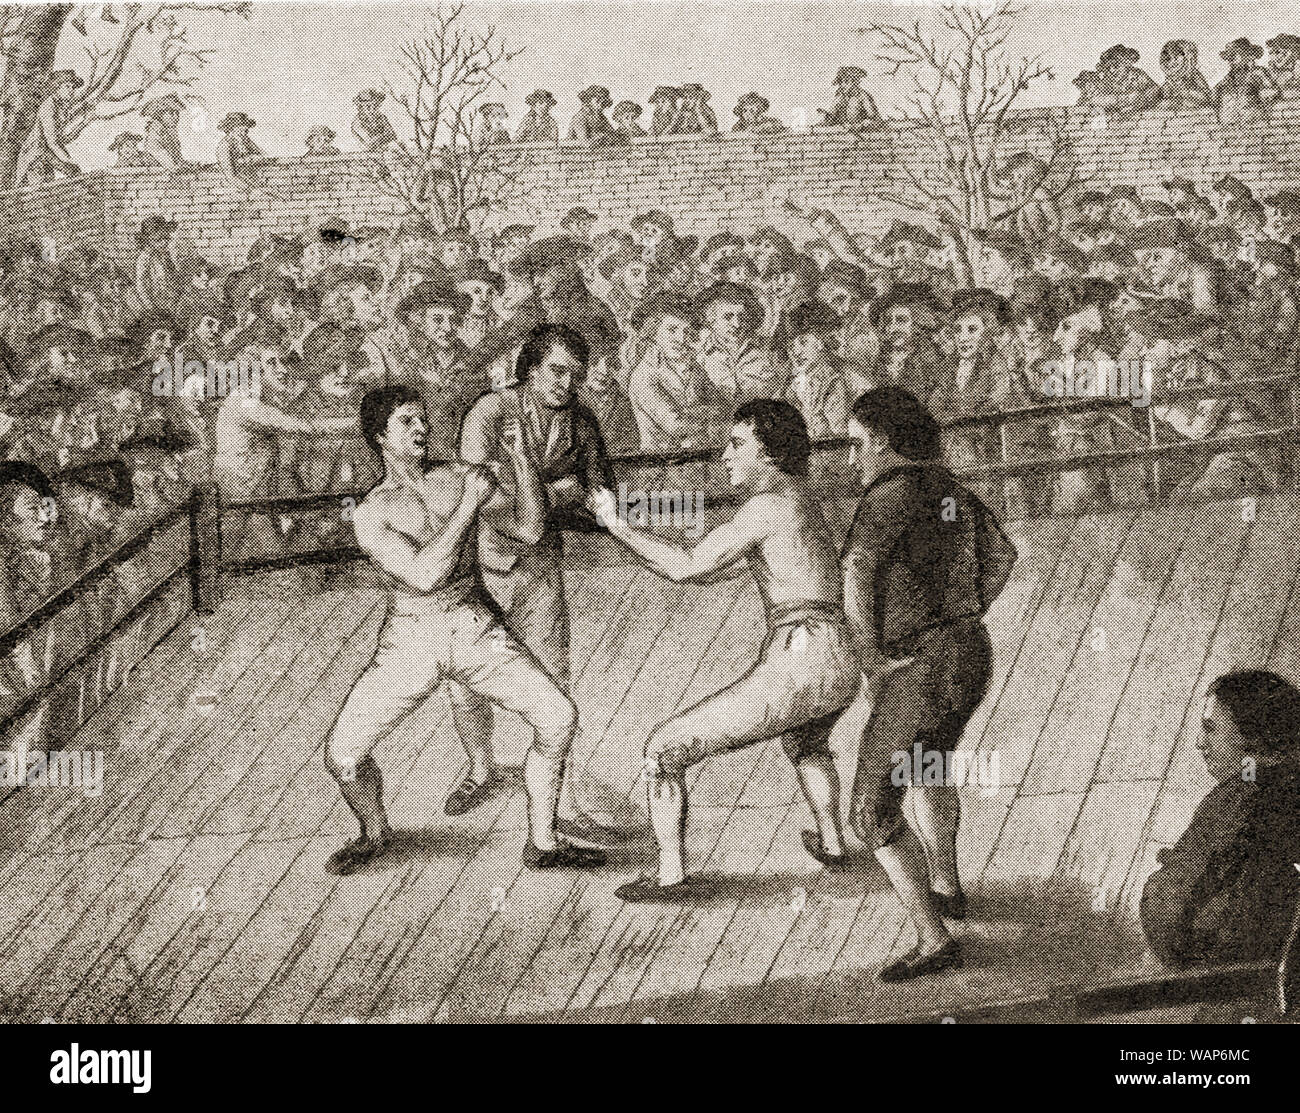 A bare knuckle boxing match in 1788 Stock Photo